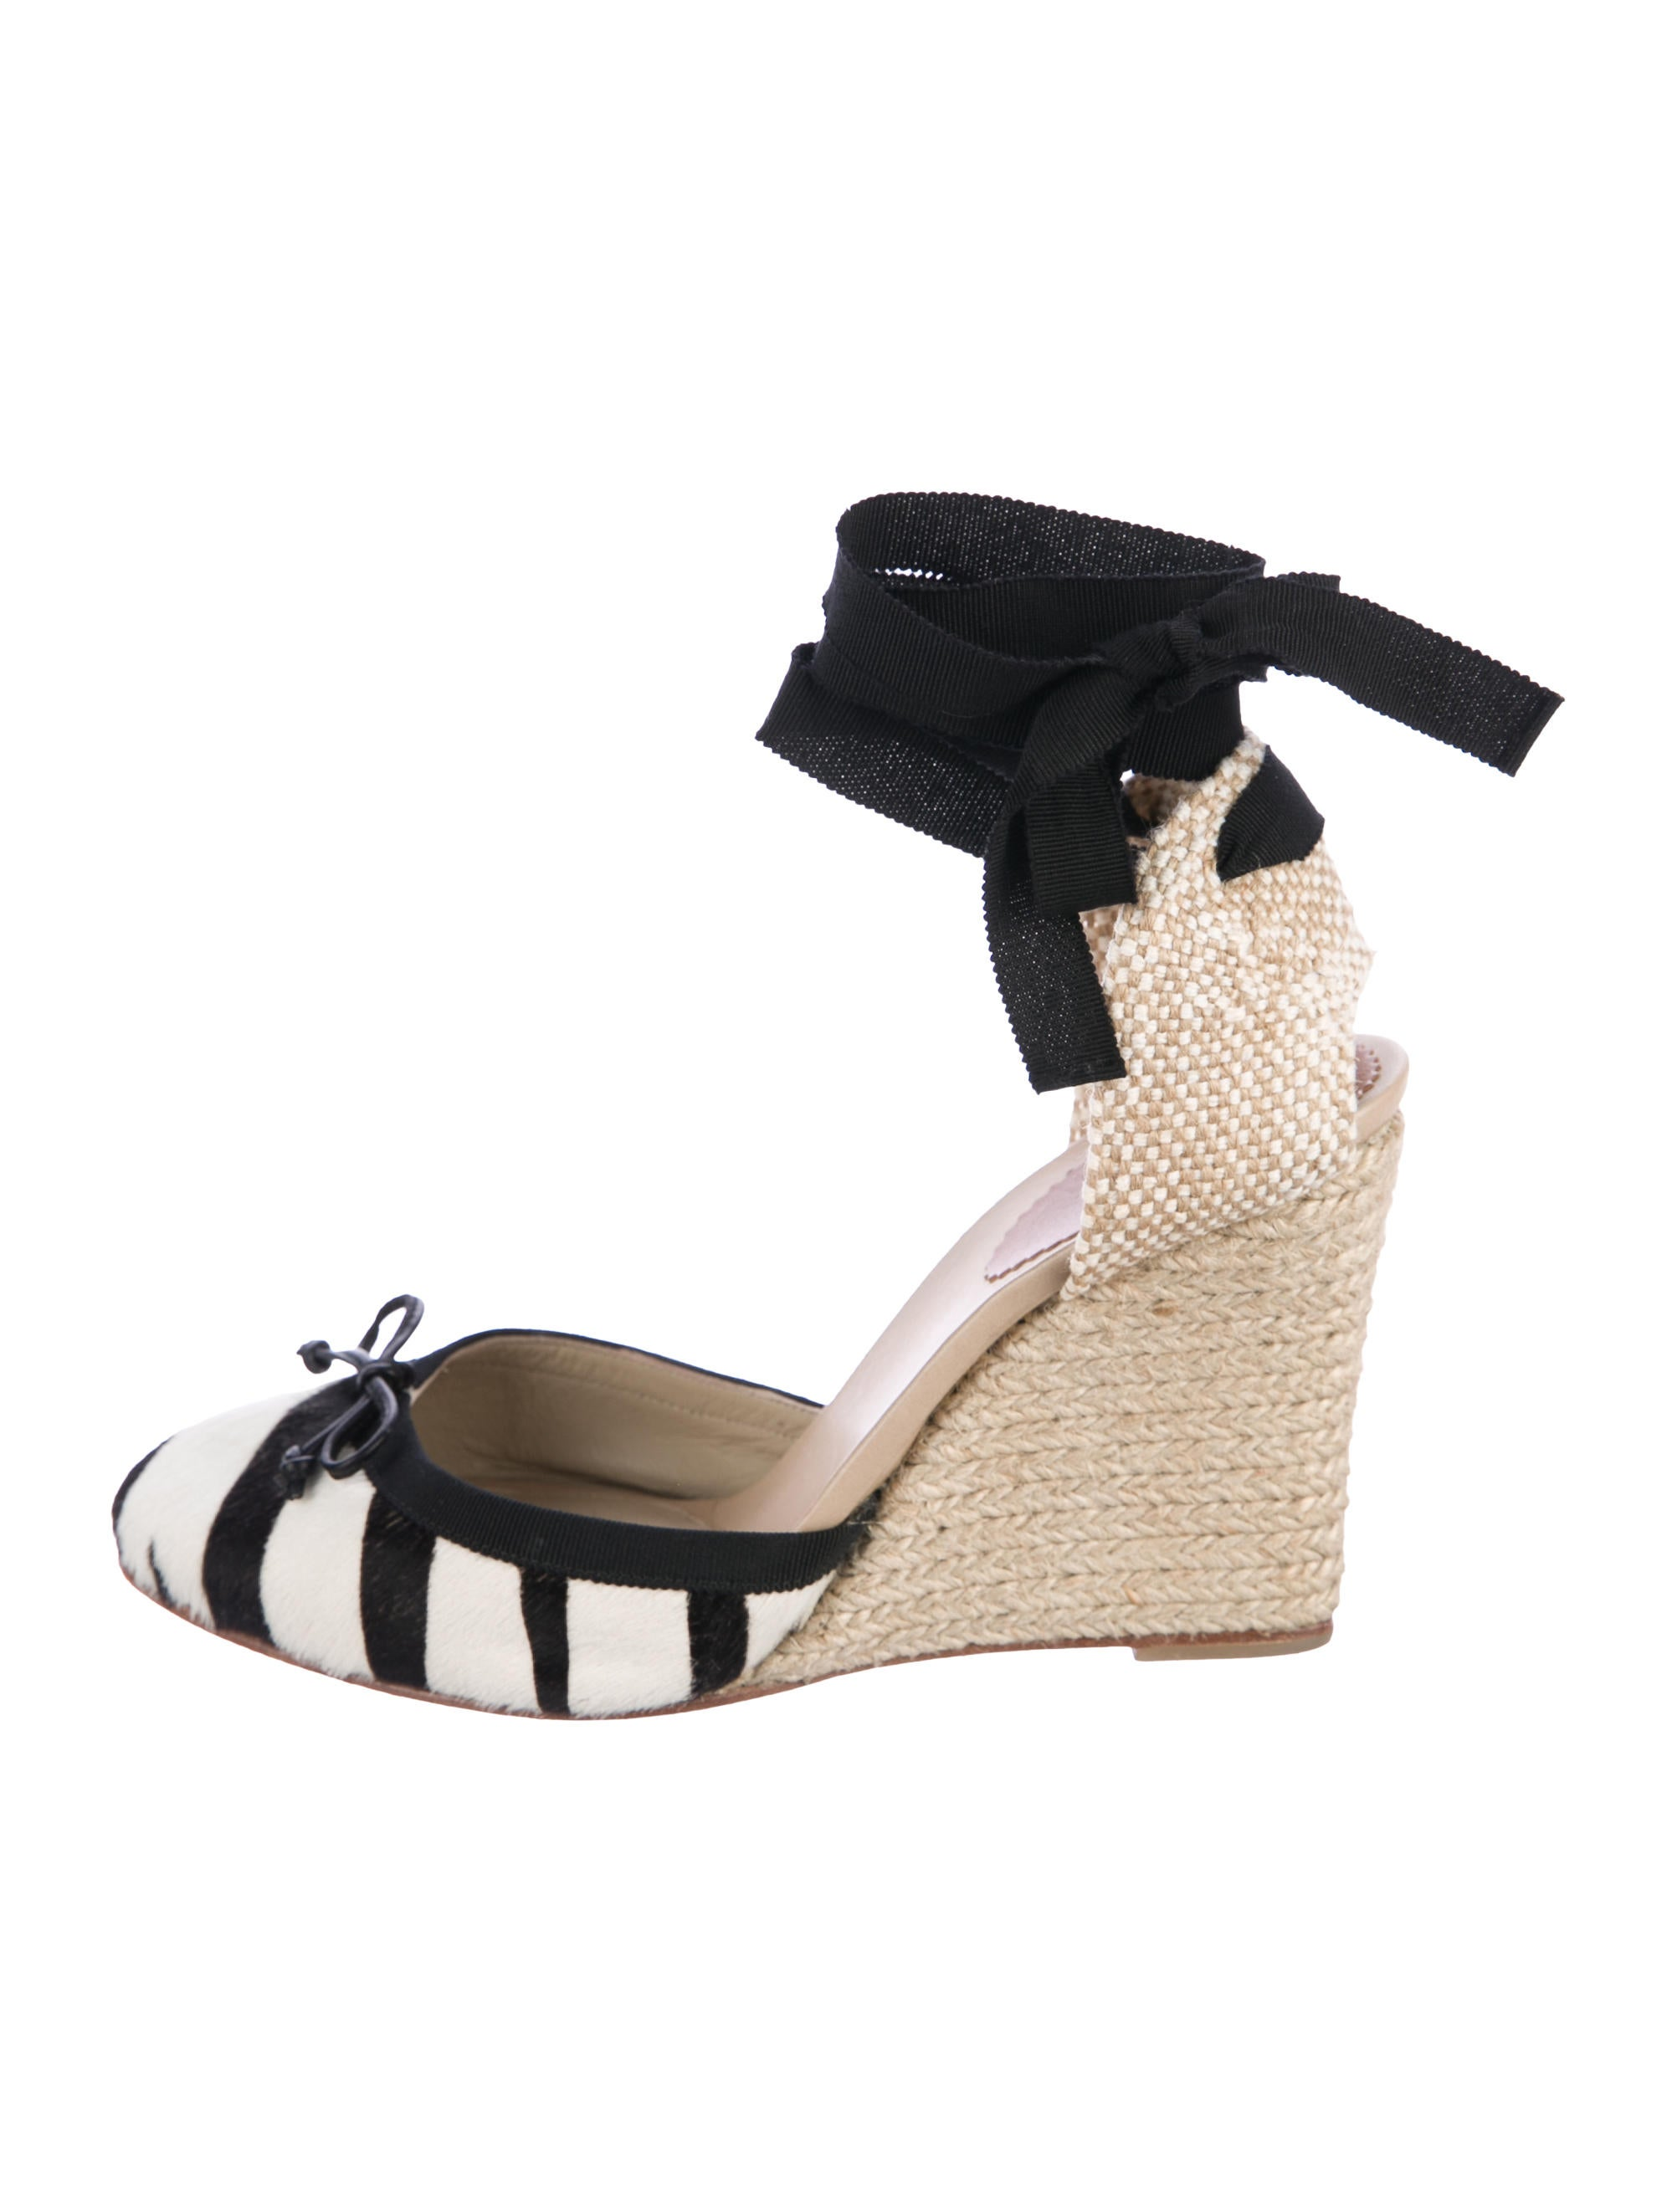 aff79392710c Christian Louboutin Carino 100 Wedges - Shoes - CHT81403